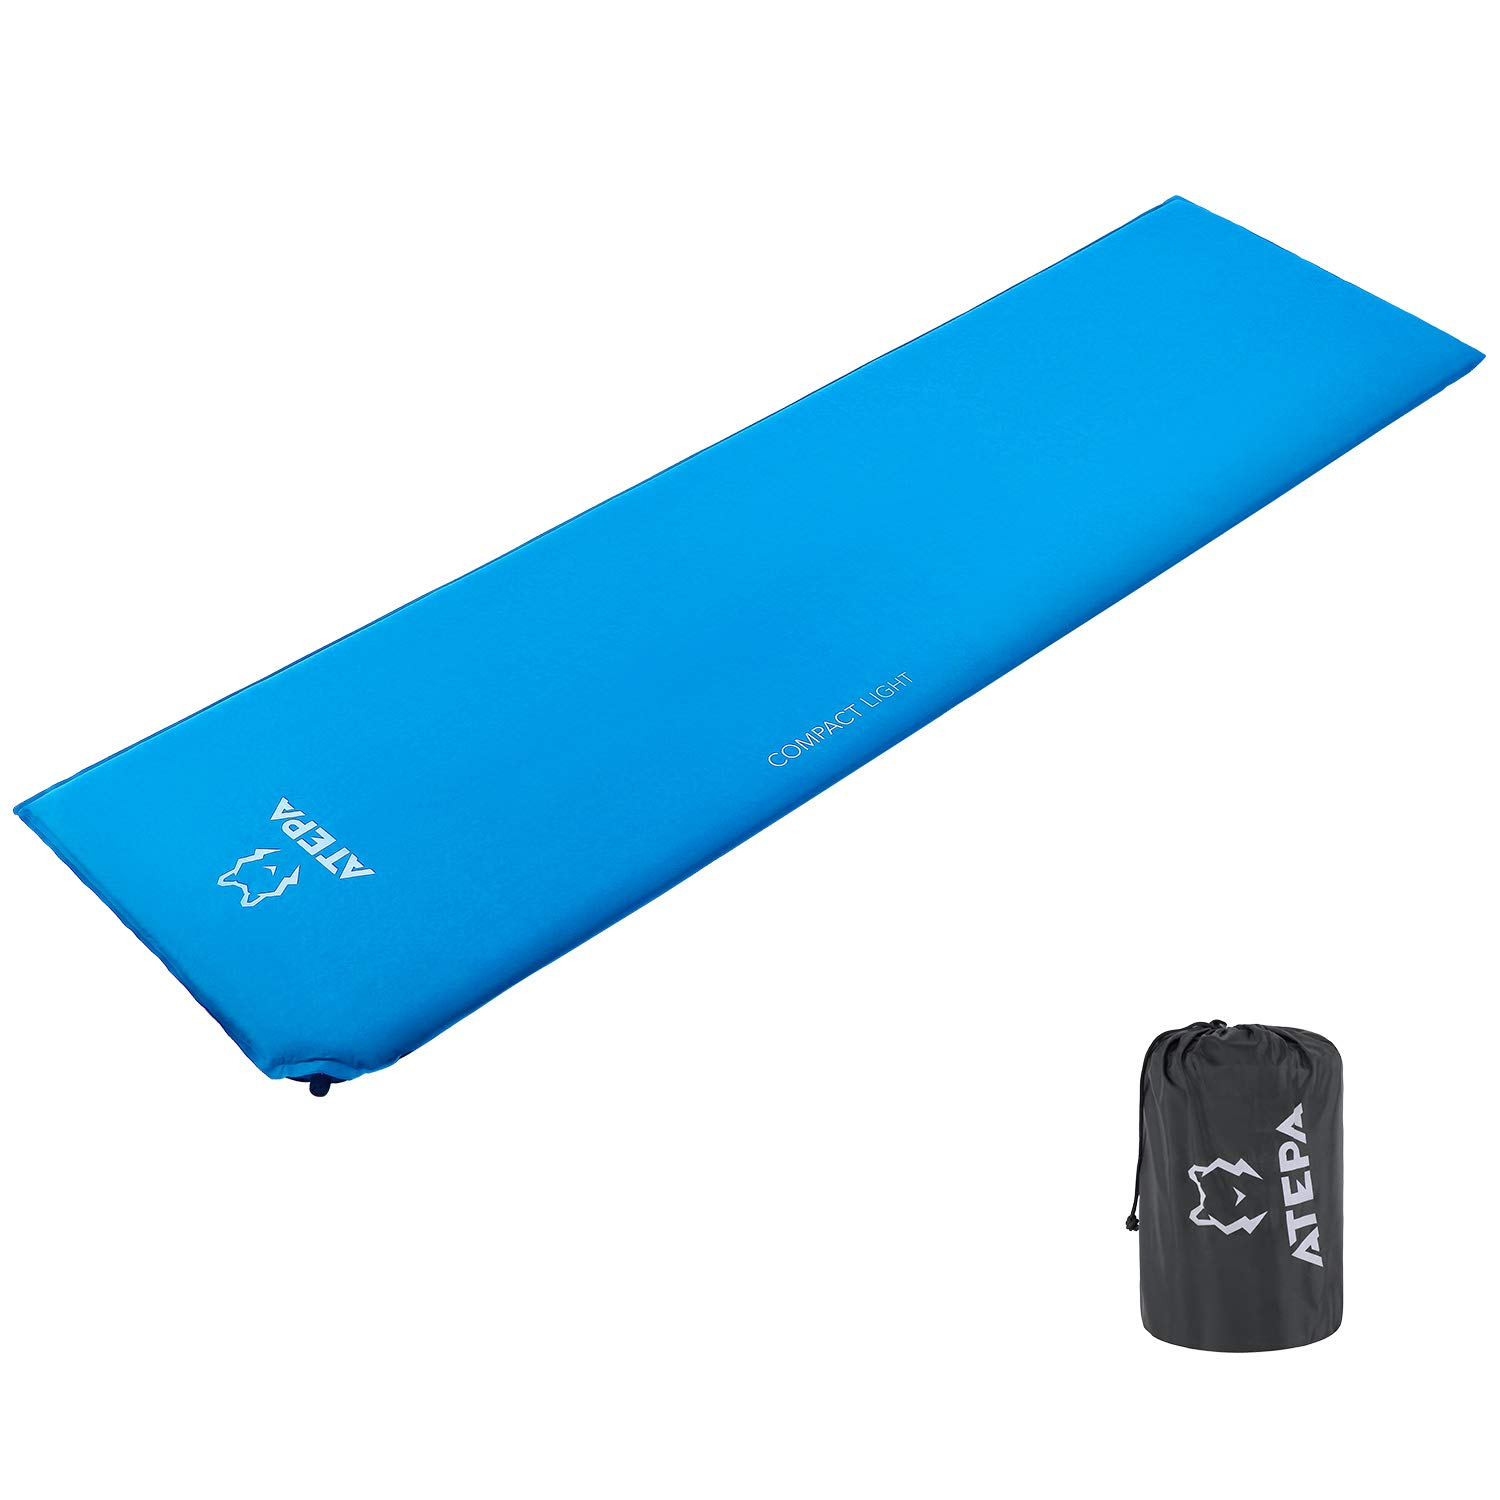 ATEPA Compact TPU Ultra-Light eco-friendly Self-Inflating Camp Pad for Camping